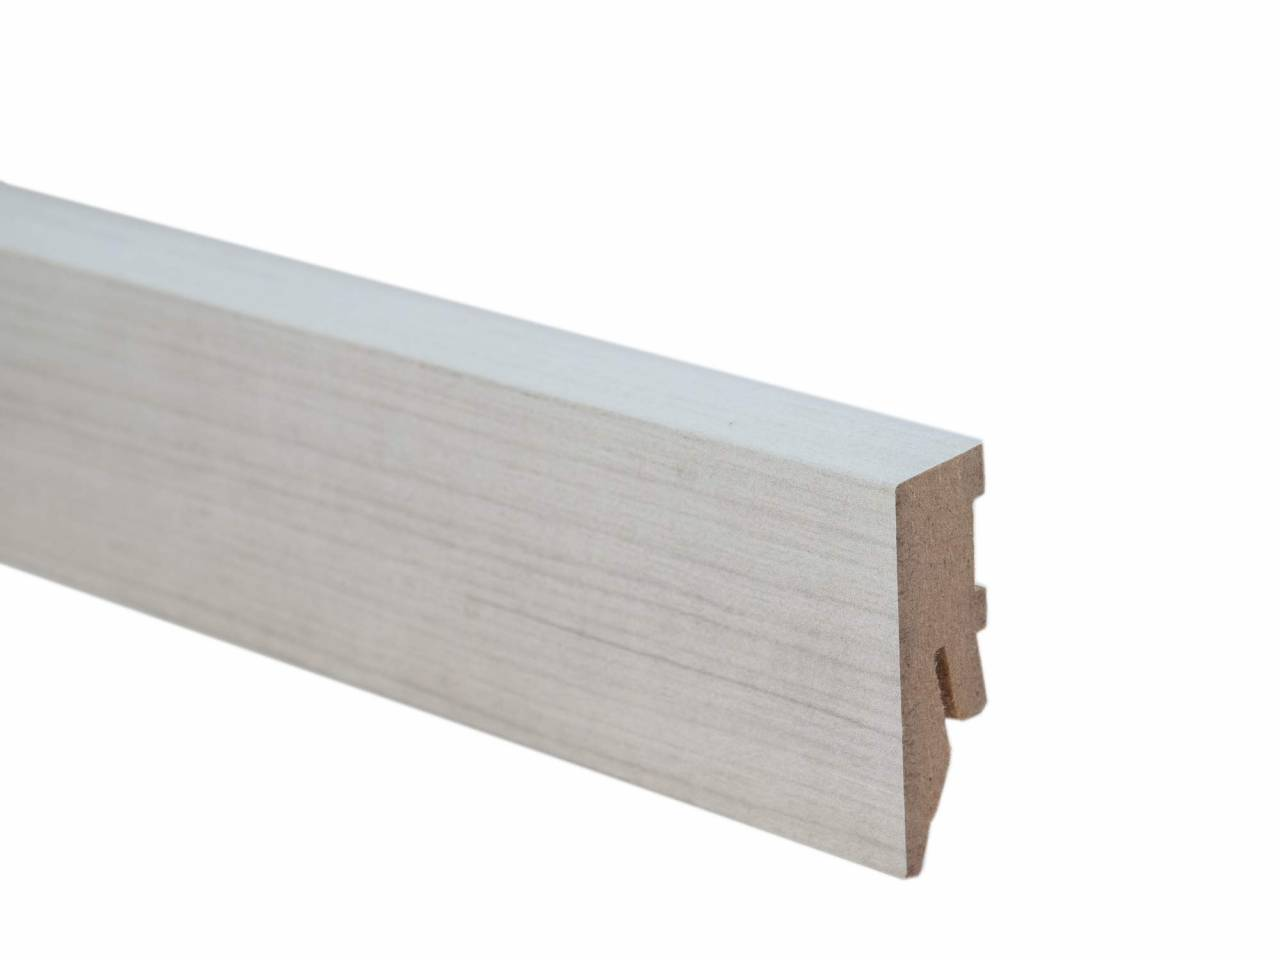 67278 MDF Skirting Board K50 (K4420)